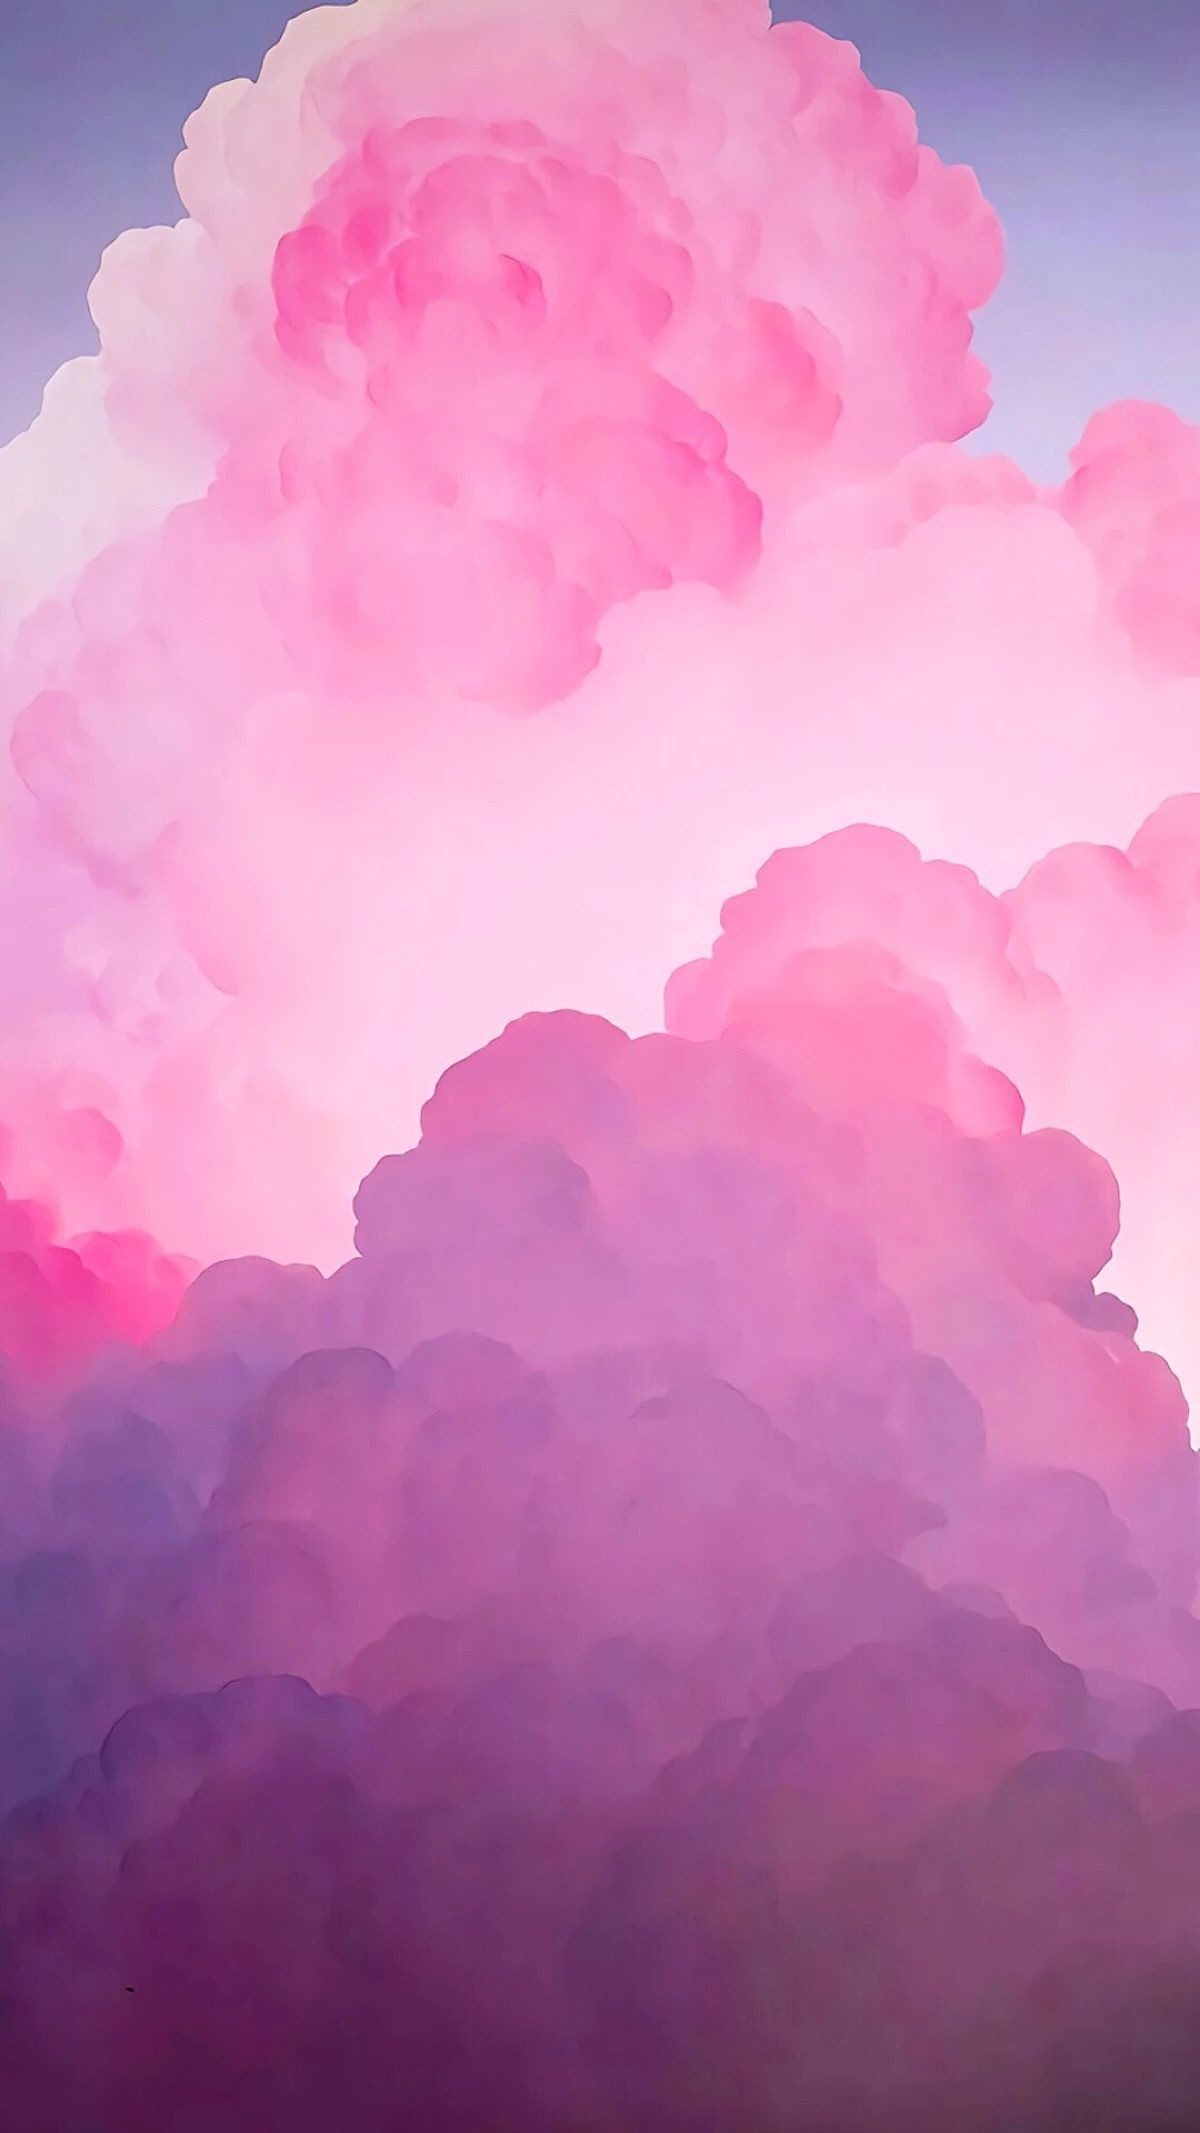 1200x2133, Colorful Clouds, Pink Clouds, Cloud Wallpaper, - Iphone Wallpaper Pink Cloud - HD Wallpaper